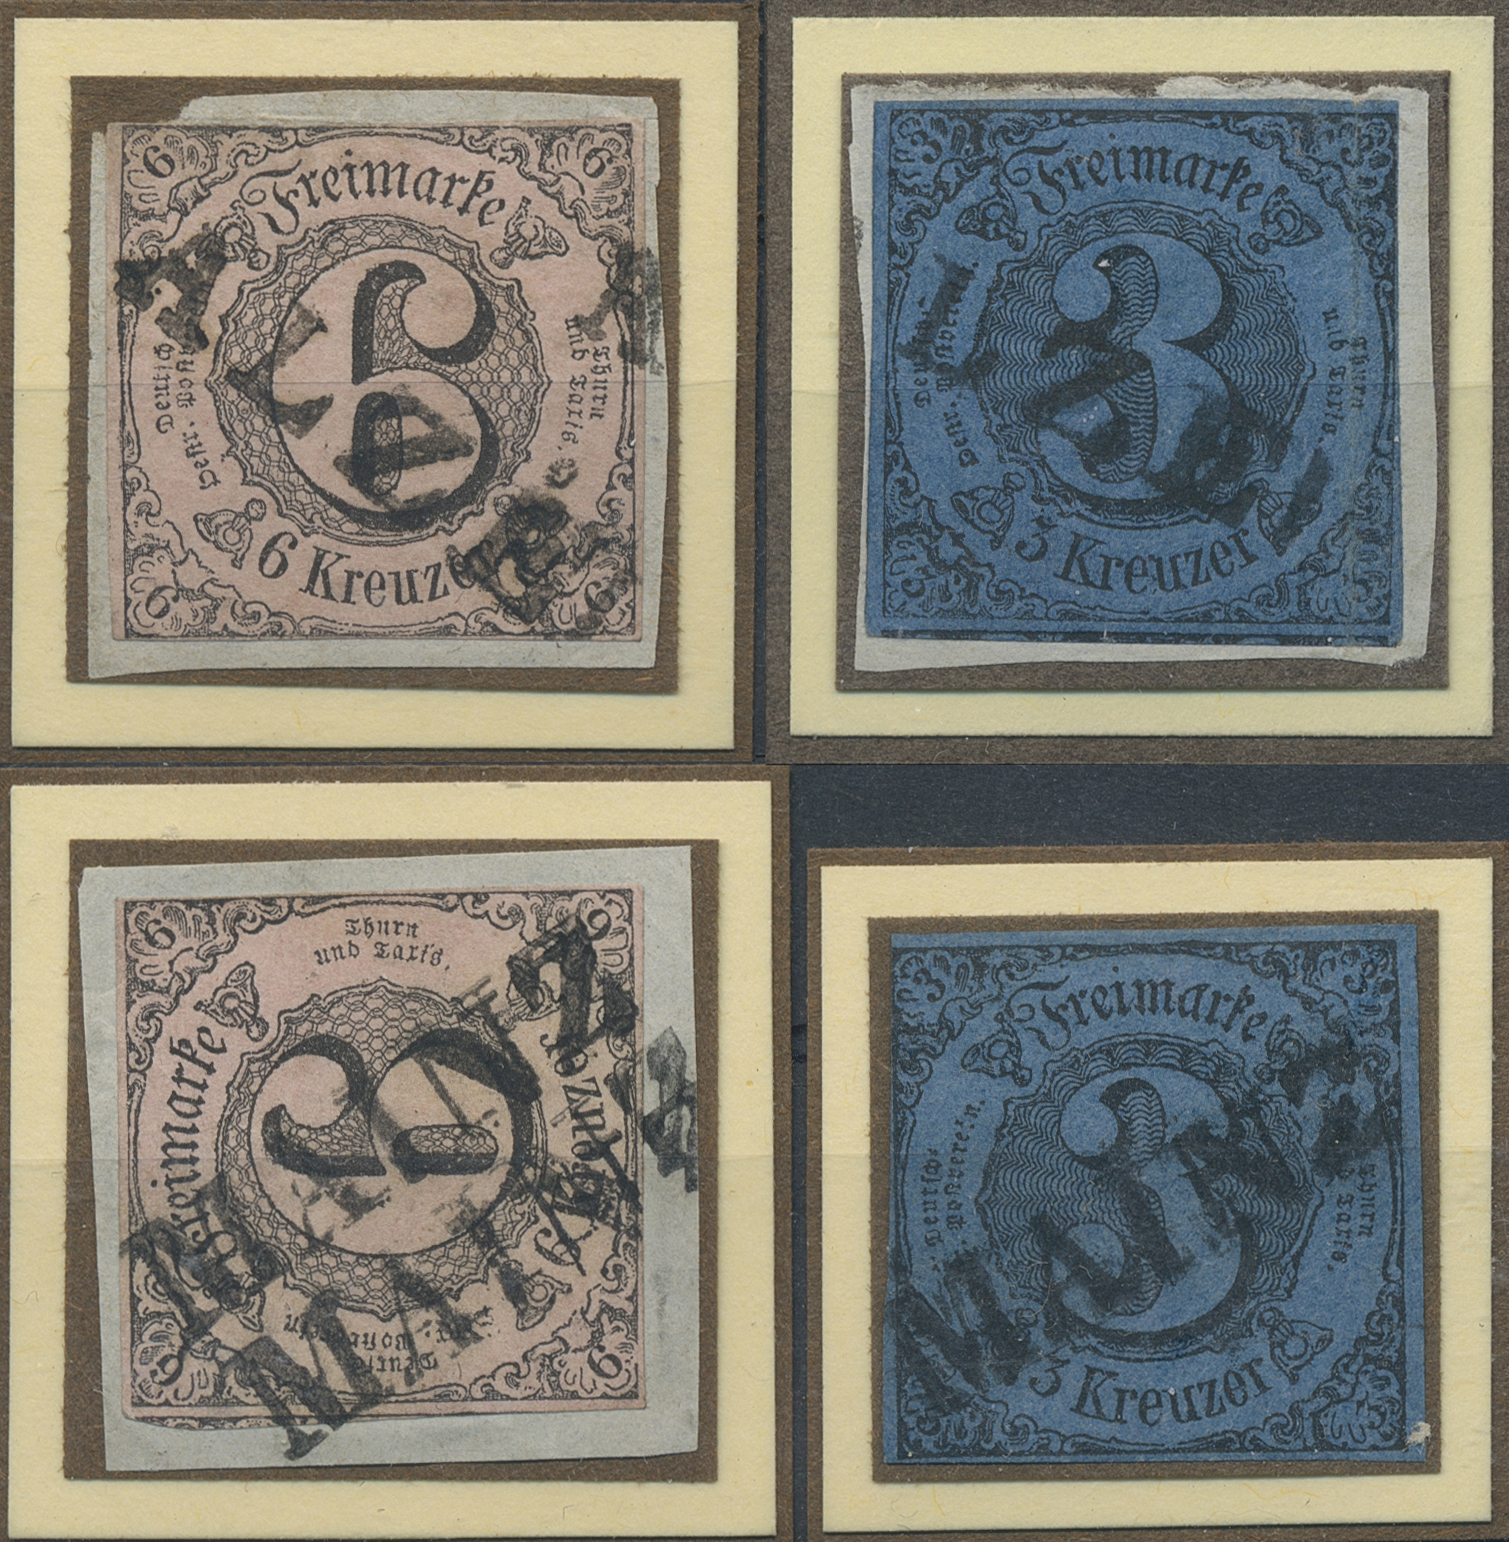 Lot 36302 - Thurn & Taxis - Marken und Briefe  -  Auktionshaus Christoph Gärtner GmbH & Co. KG Sale #44 Collections Germany